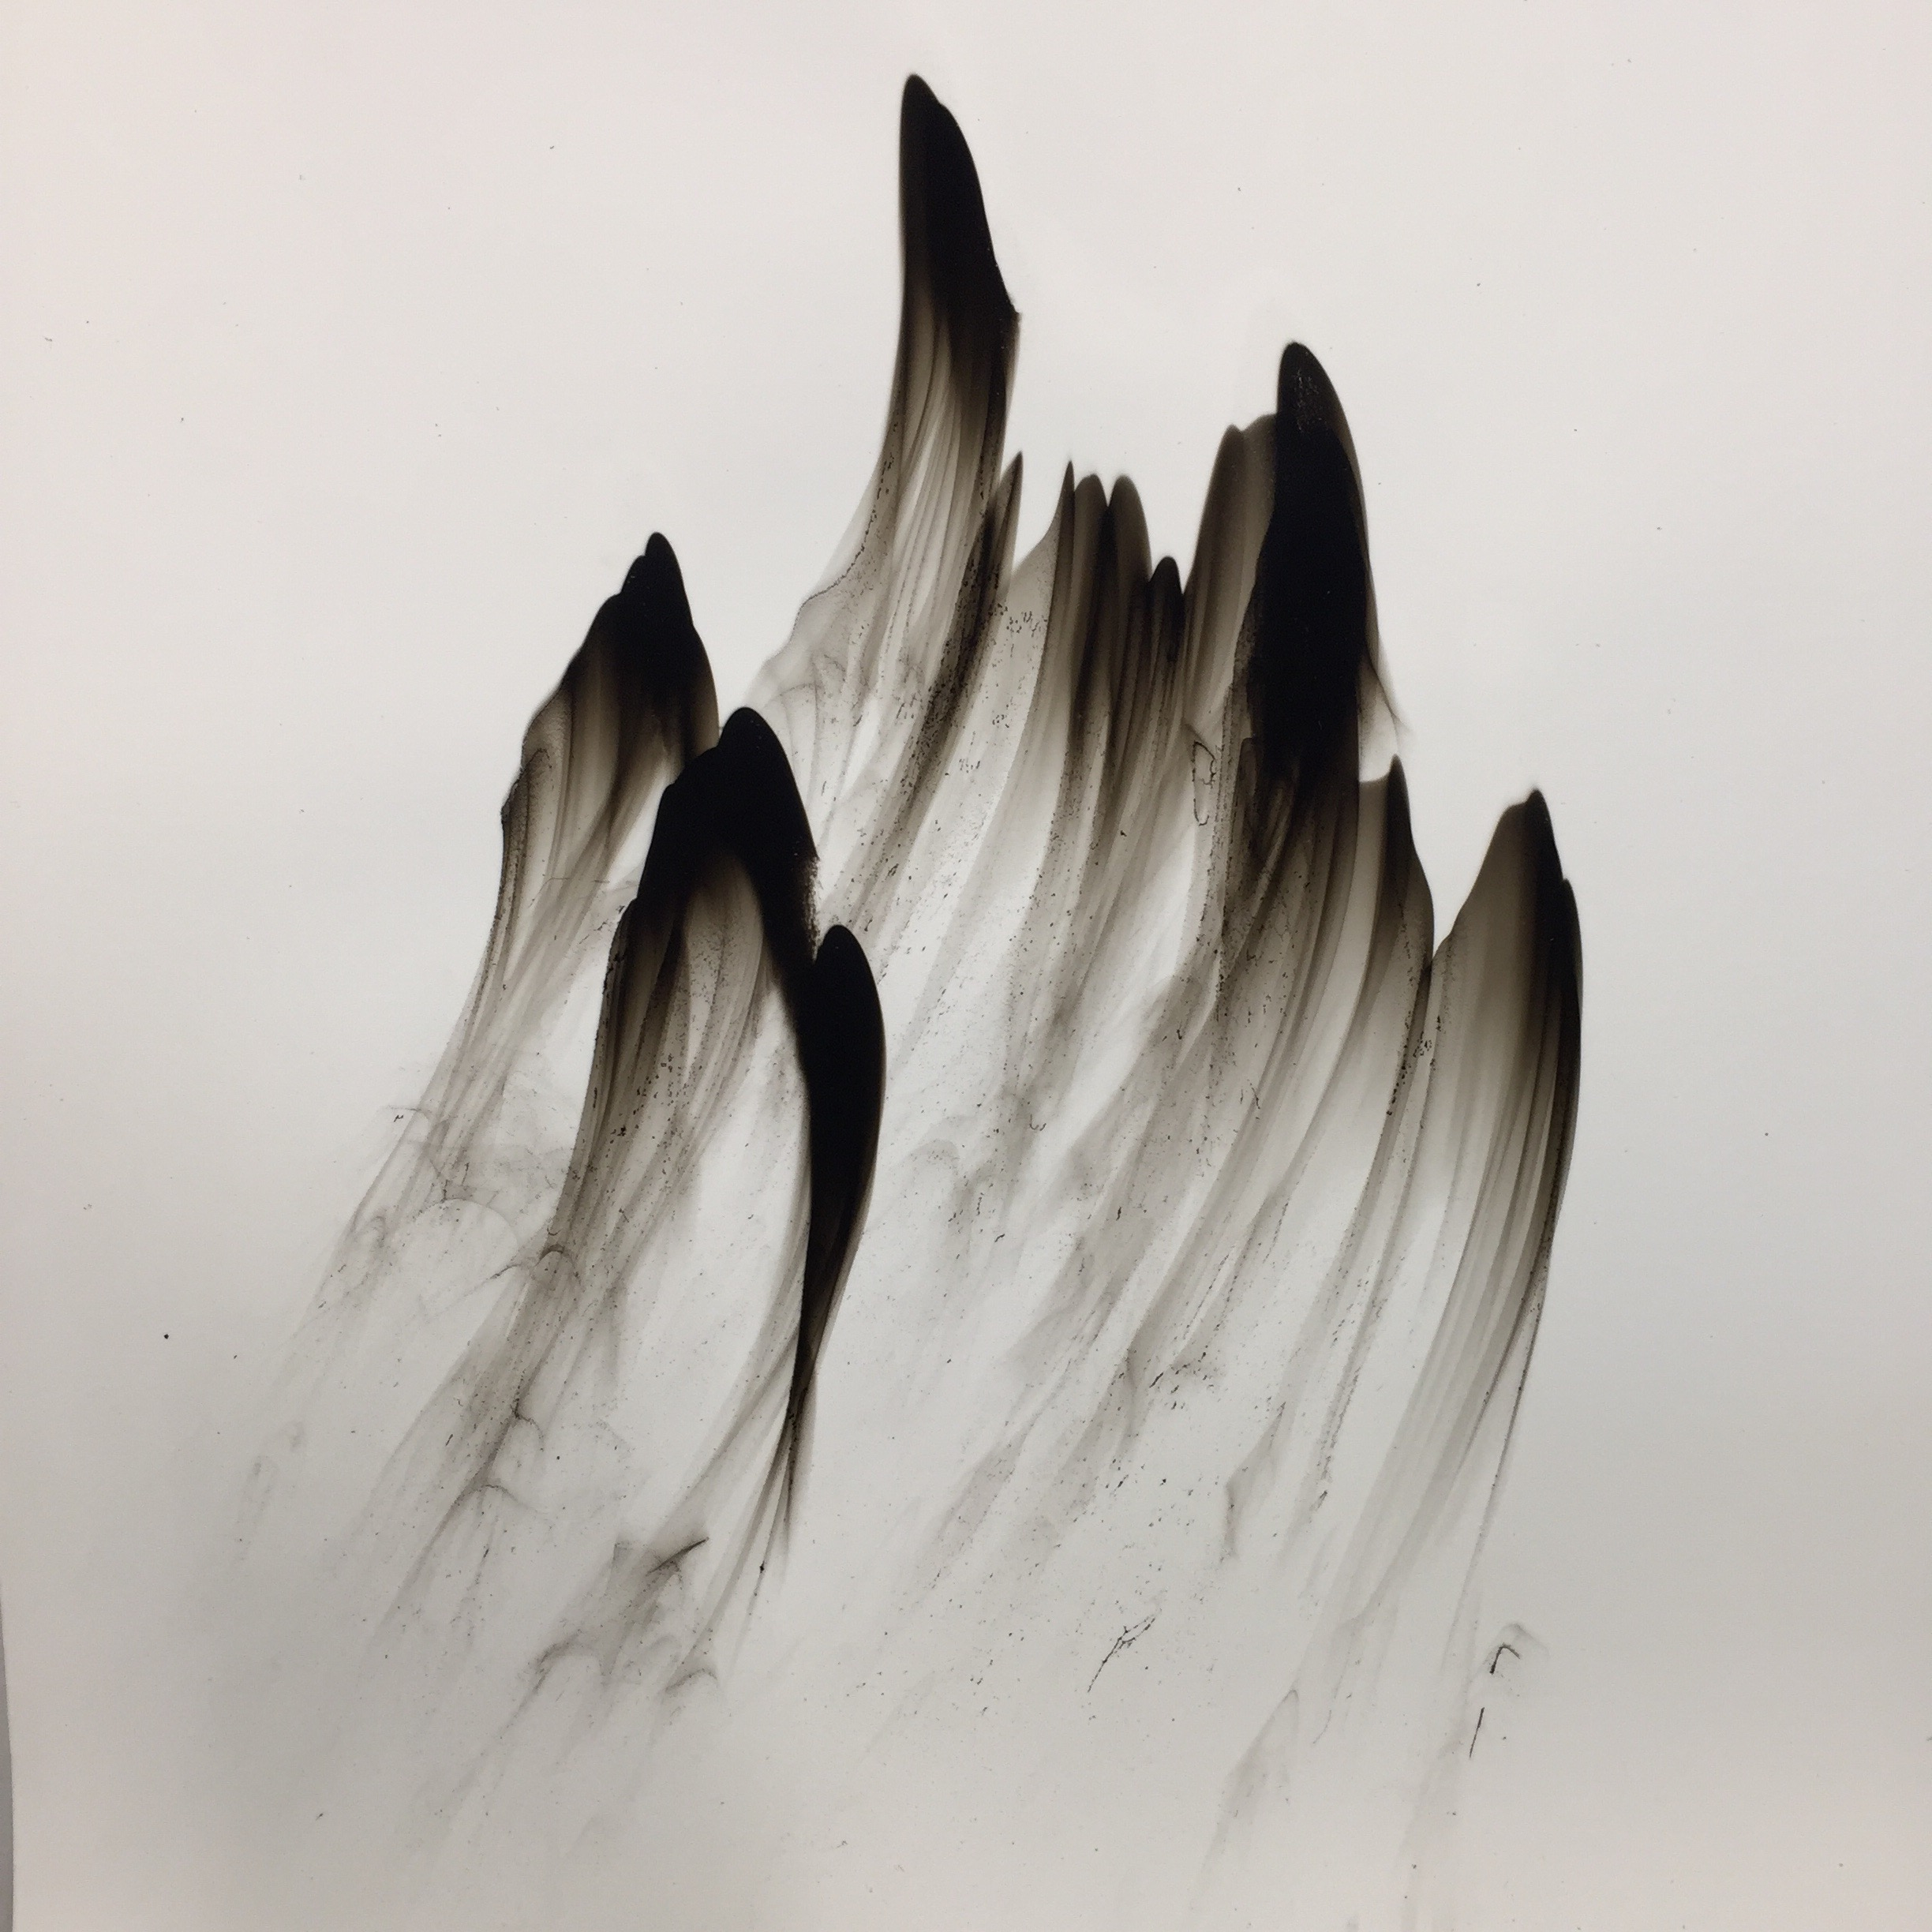 Dennis Lee Mitchell  , Landscape 69, 2016, Smoke on paper, 19 x 19 inches